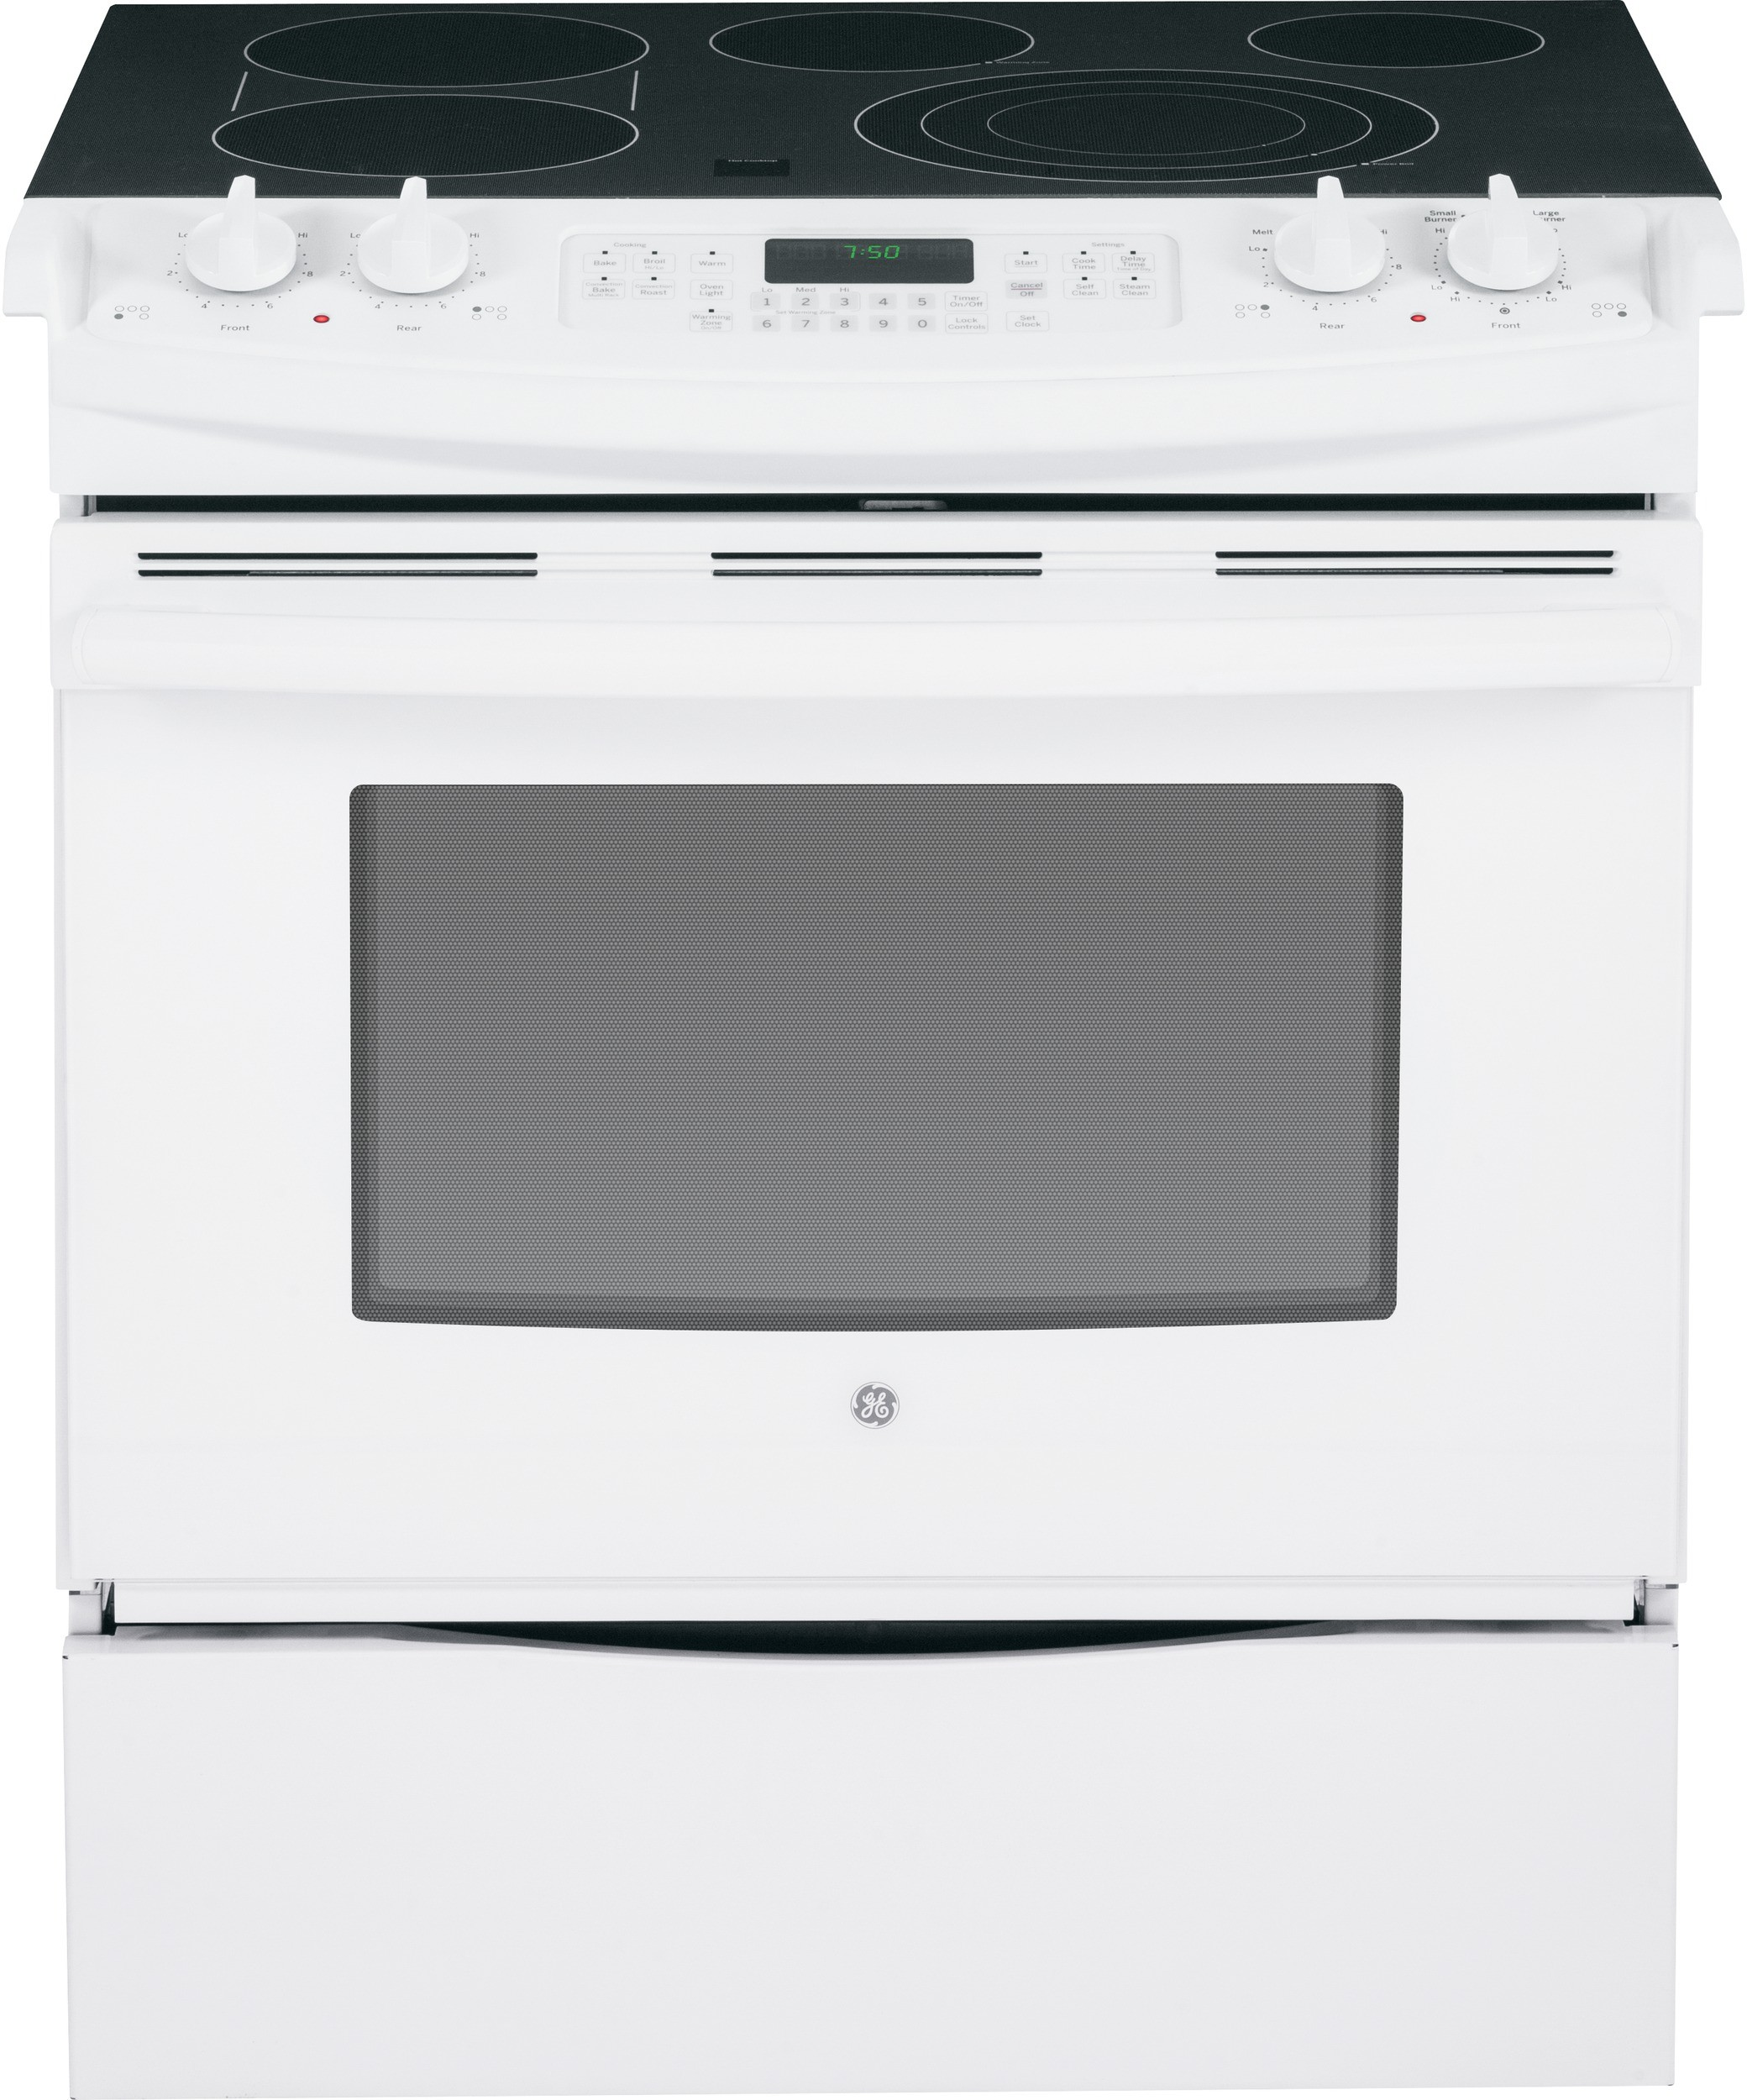 Ge Js750dfww 30 Inch Slide In Electric Range With True Convection Boil Fast Preheat Bridge Zone Self Clean 4 Elements Storage Drawer Fits